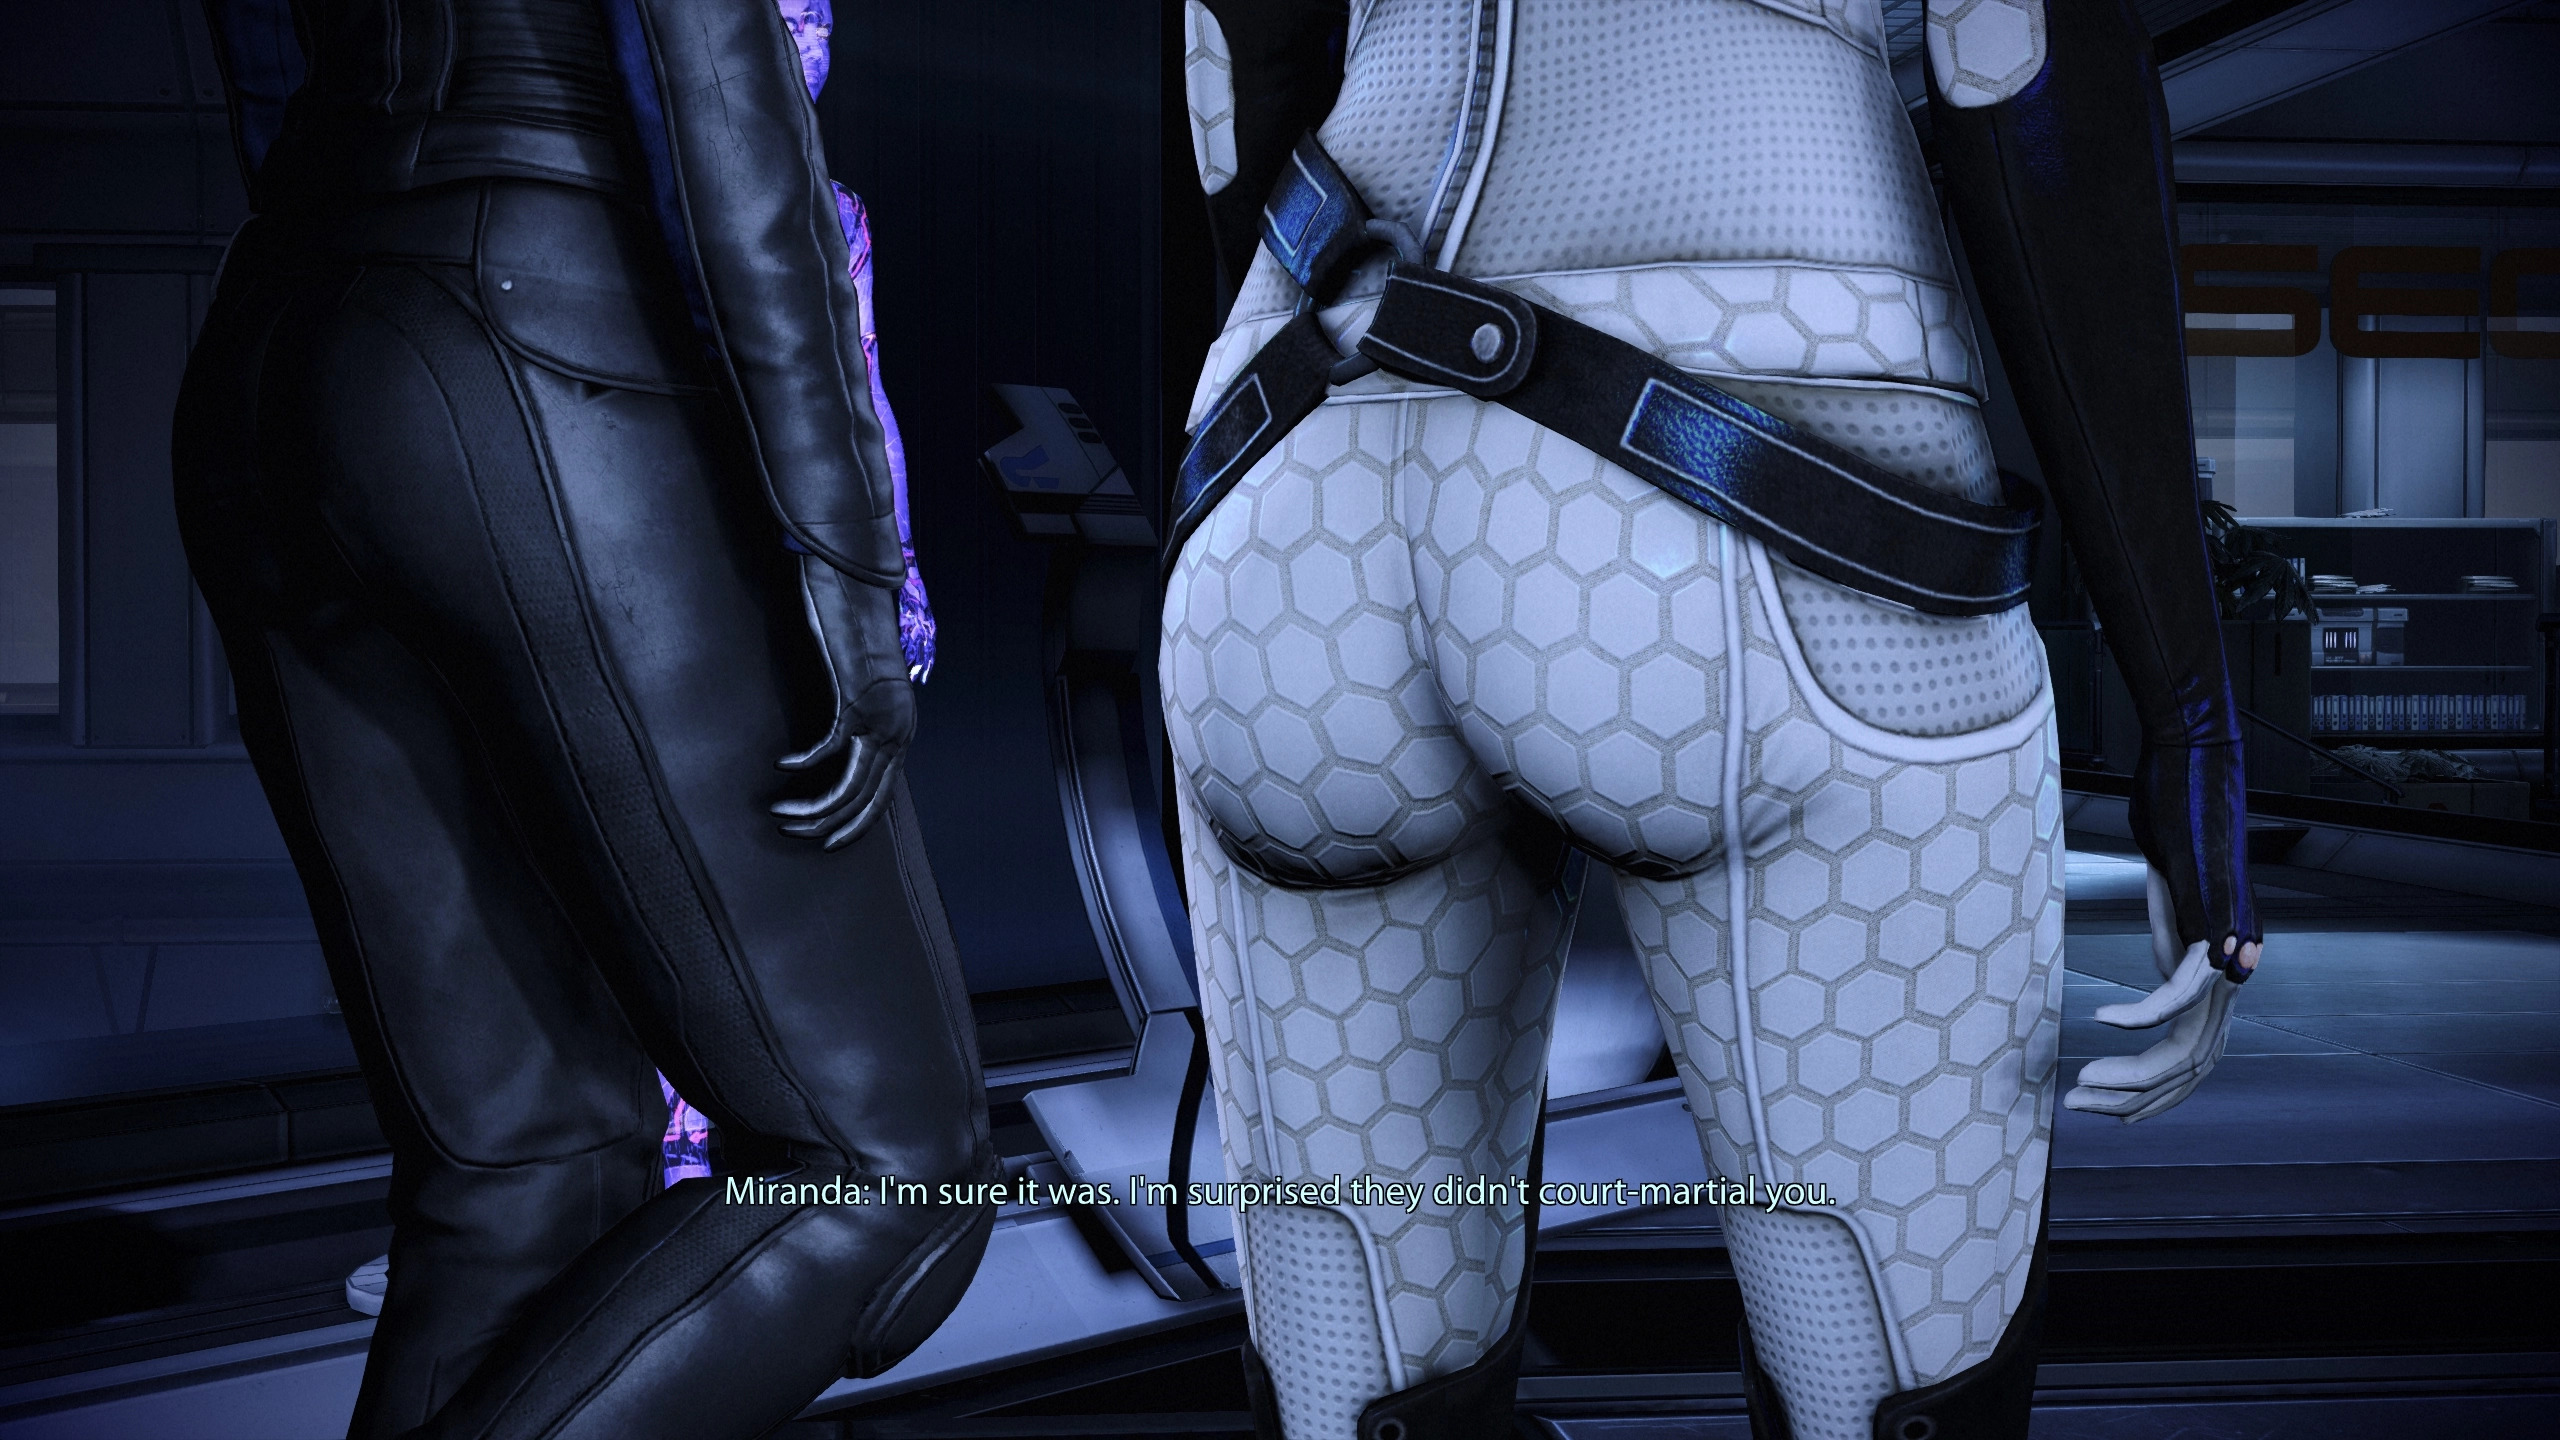 an image where the camera is focused on miranda's butt